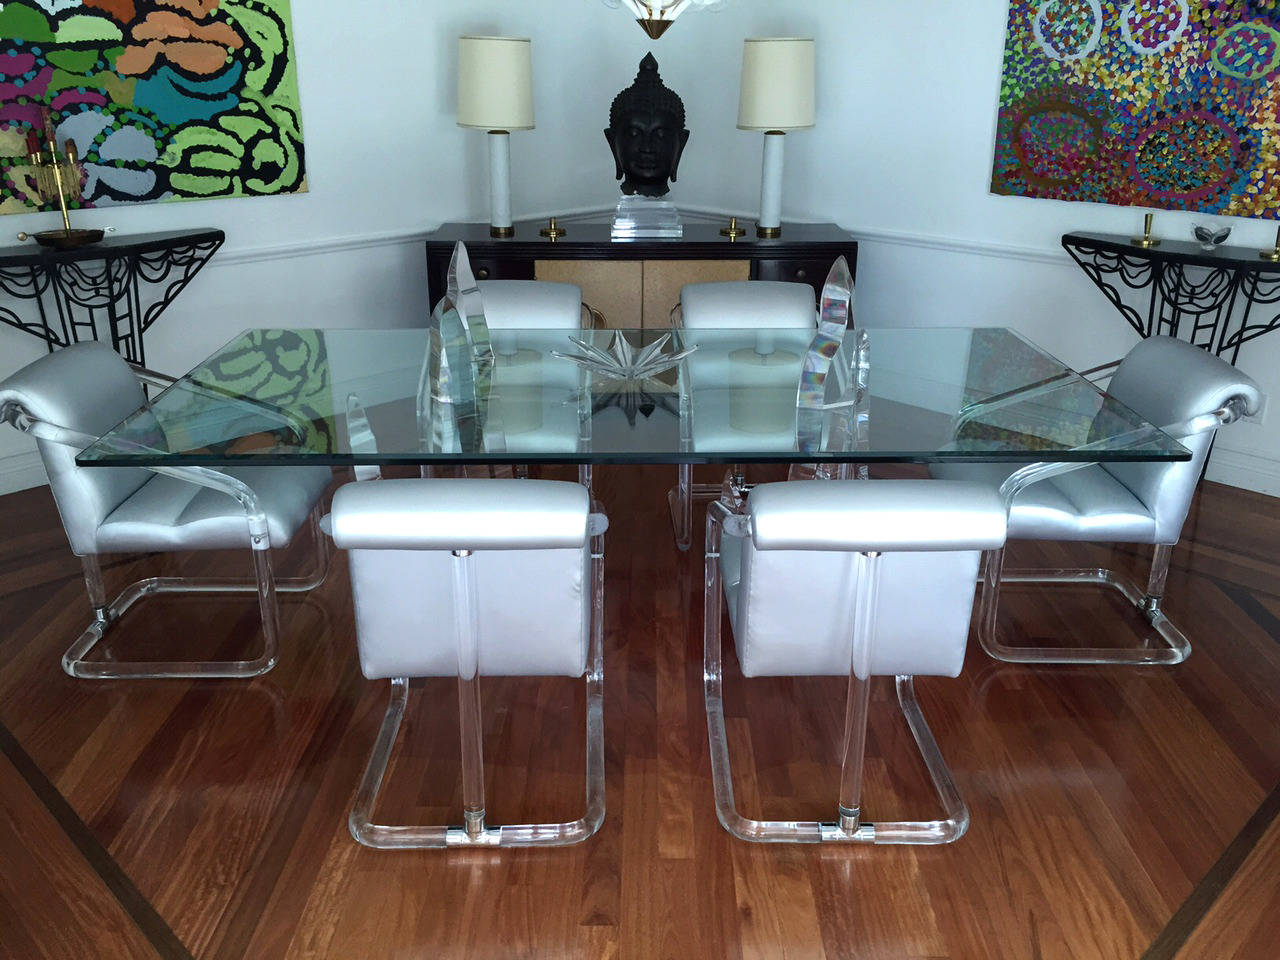 A glamours set of six dining chair with low arm designed by Lion in Frost, circa 1970s. These chairs have solid Lucite tubular frames joined by chrome T-shape hardware. The elements render them gorgeous from all angles. They have been newly